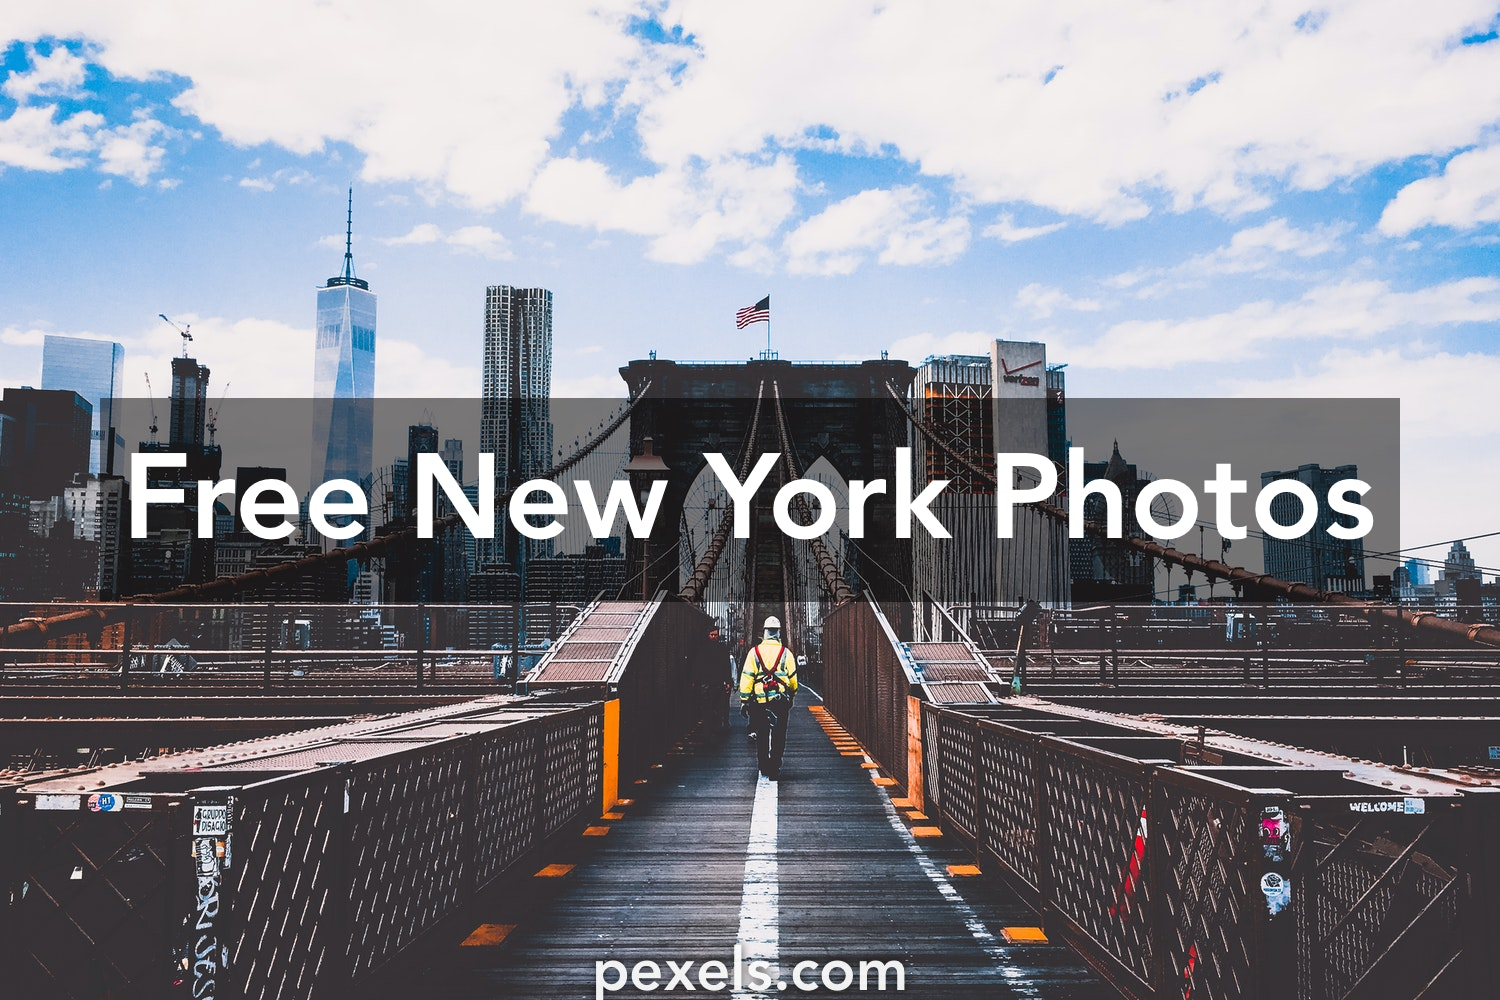 City Pictures Pexels Free Stock Photos: Free Stock Photos Of New York · Pexels